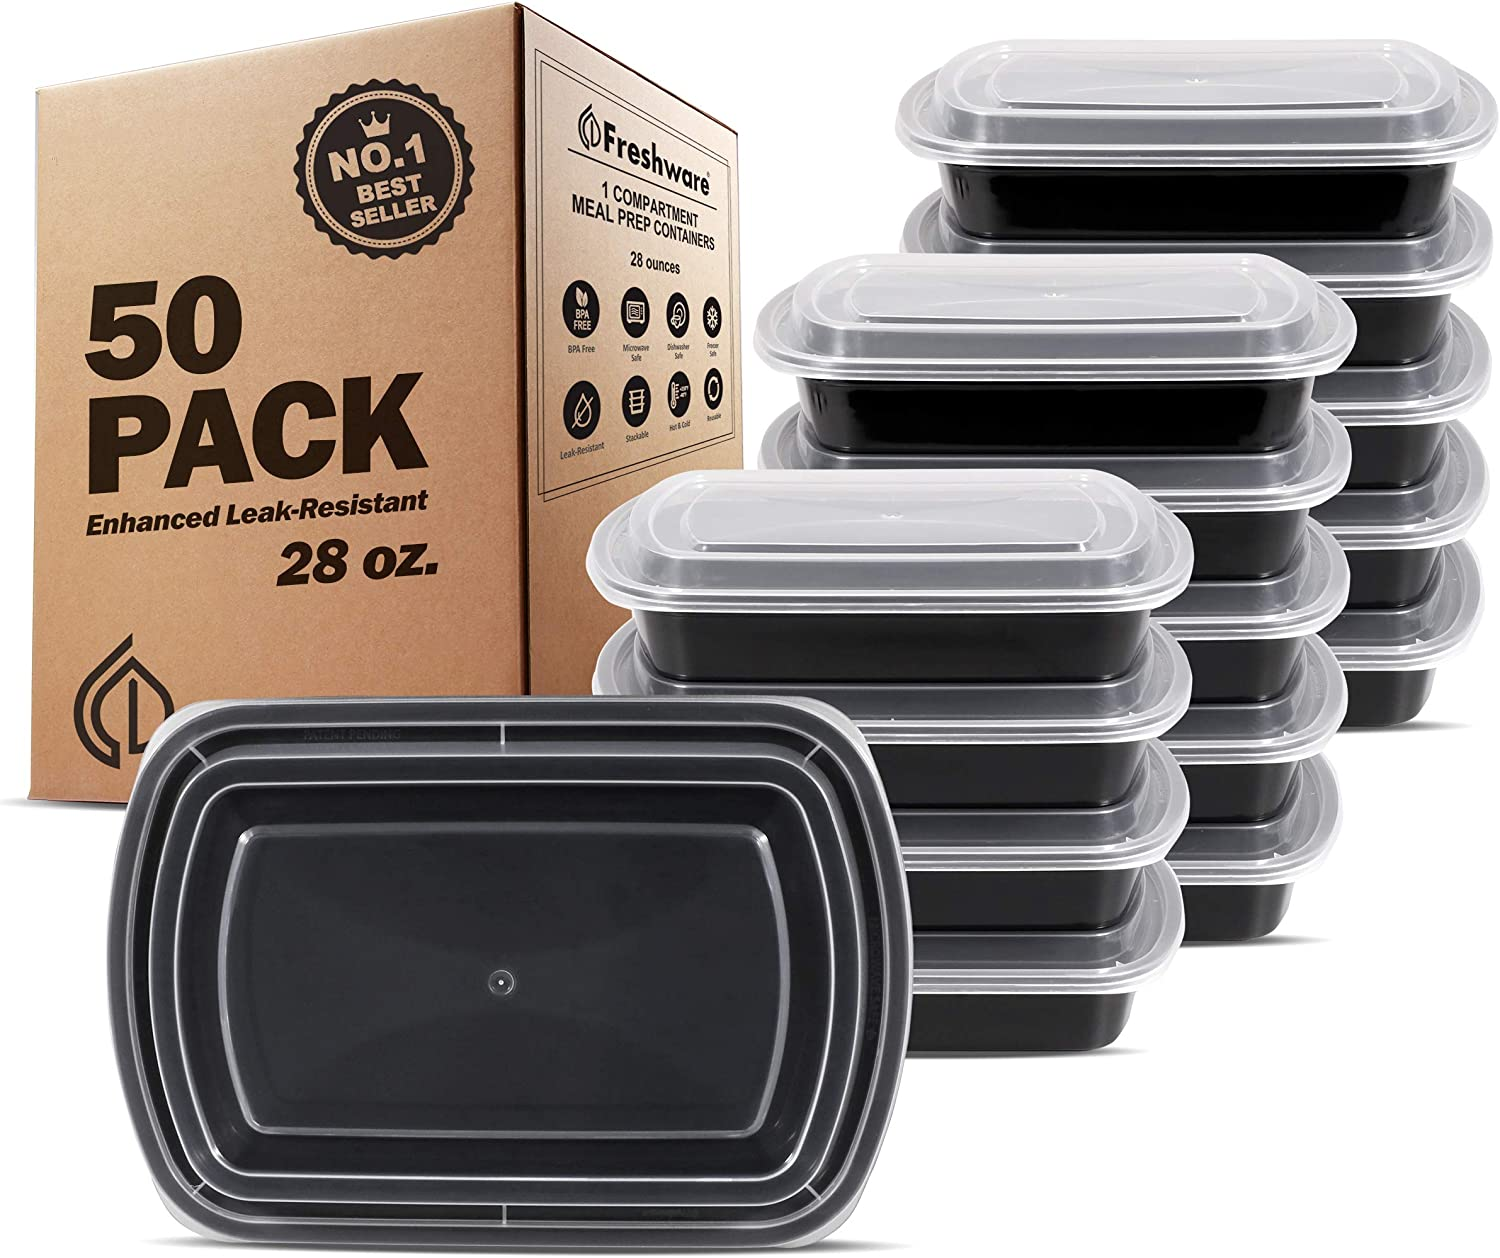 Freshware Meal Prep Containers [50 Pack] 1 Compartment Food Storage Containers with Lids, Bento Box | BPA Free | Stackable | Microwave/Dishwasher/Freezer Safe, Portion Control, 21 Day Fix (28 oz)